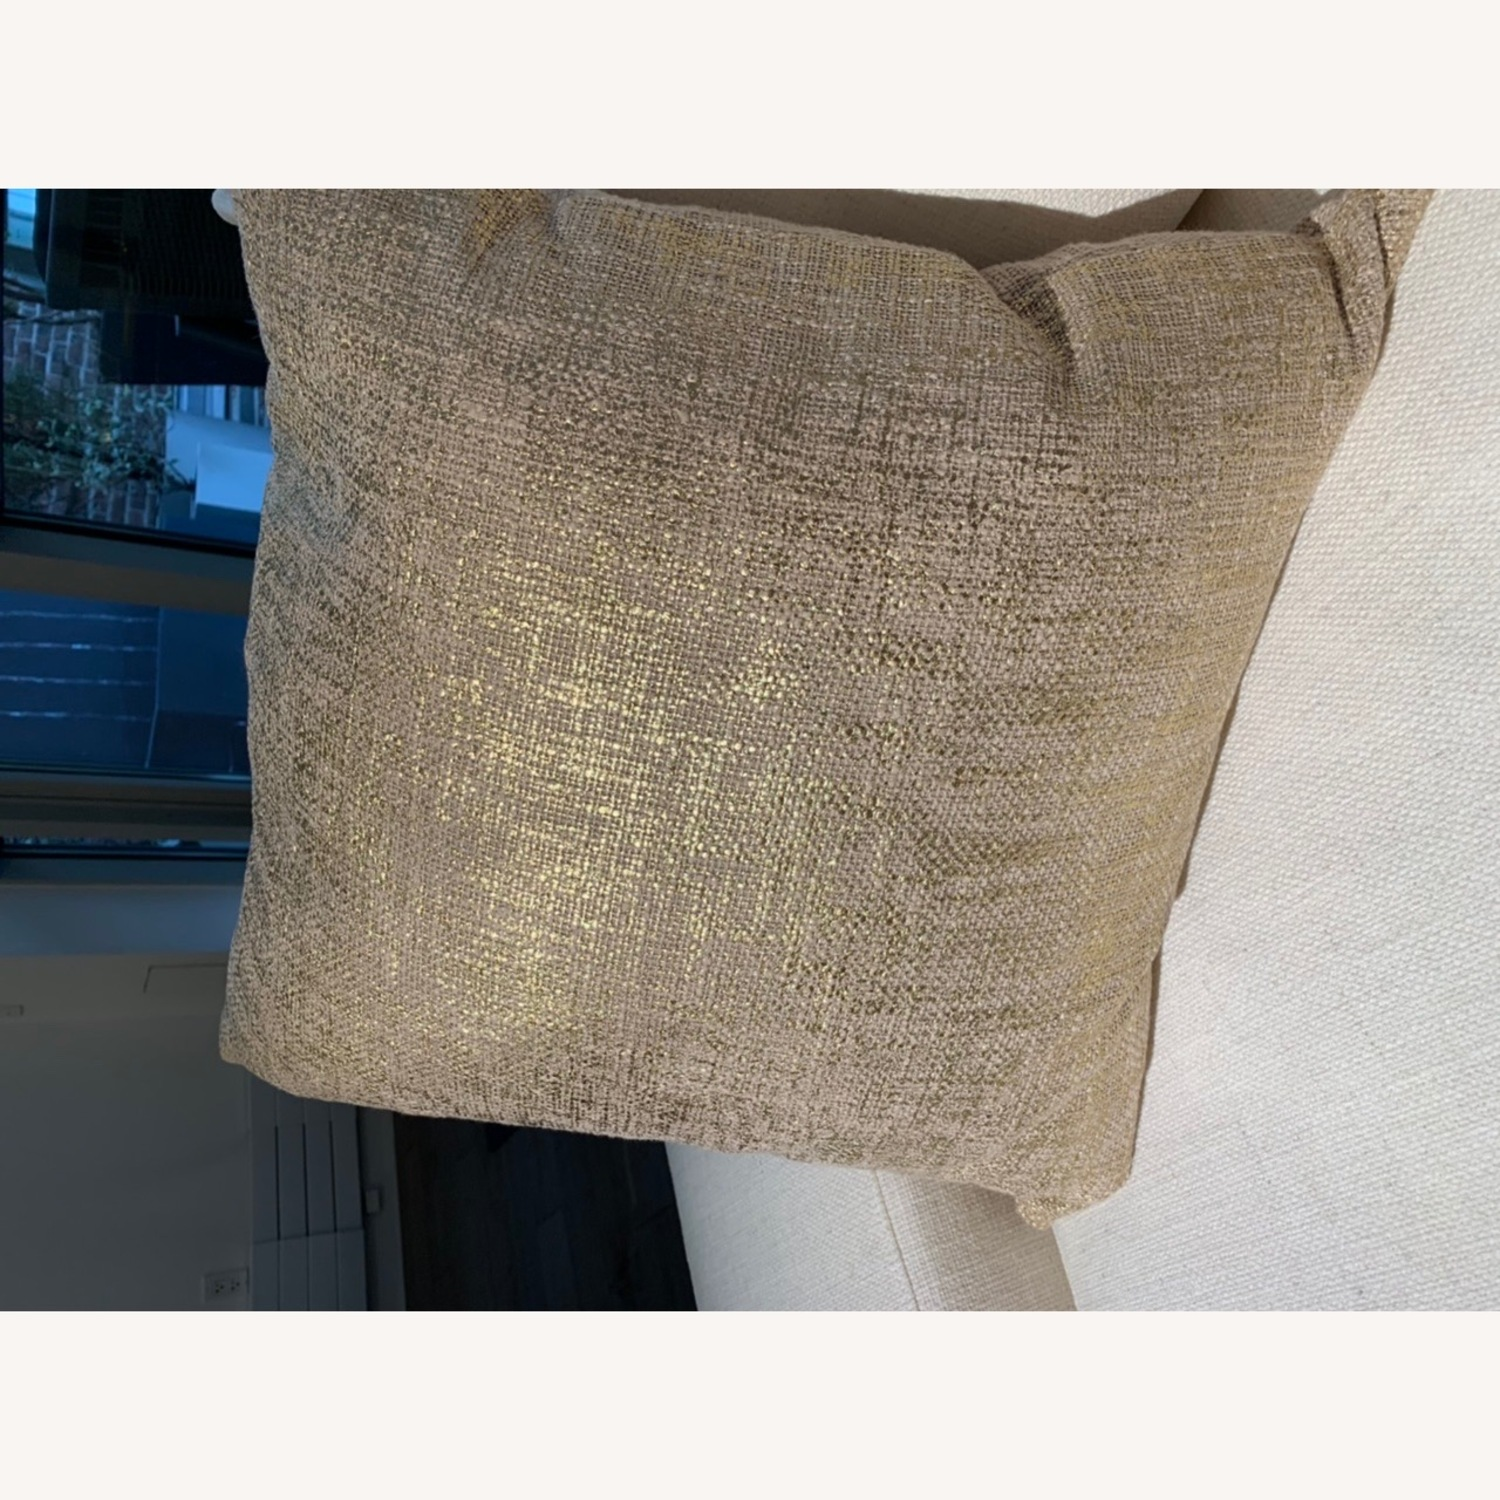 CB2 Glitterati Accent Pillows - Gold - image-7